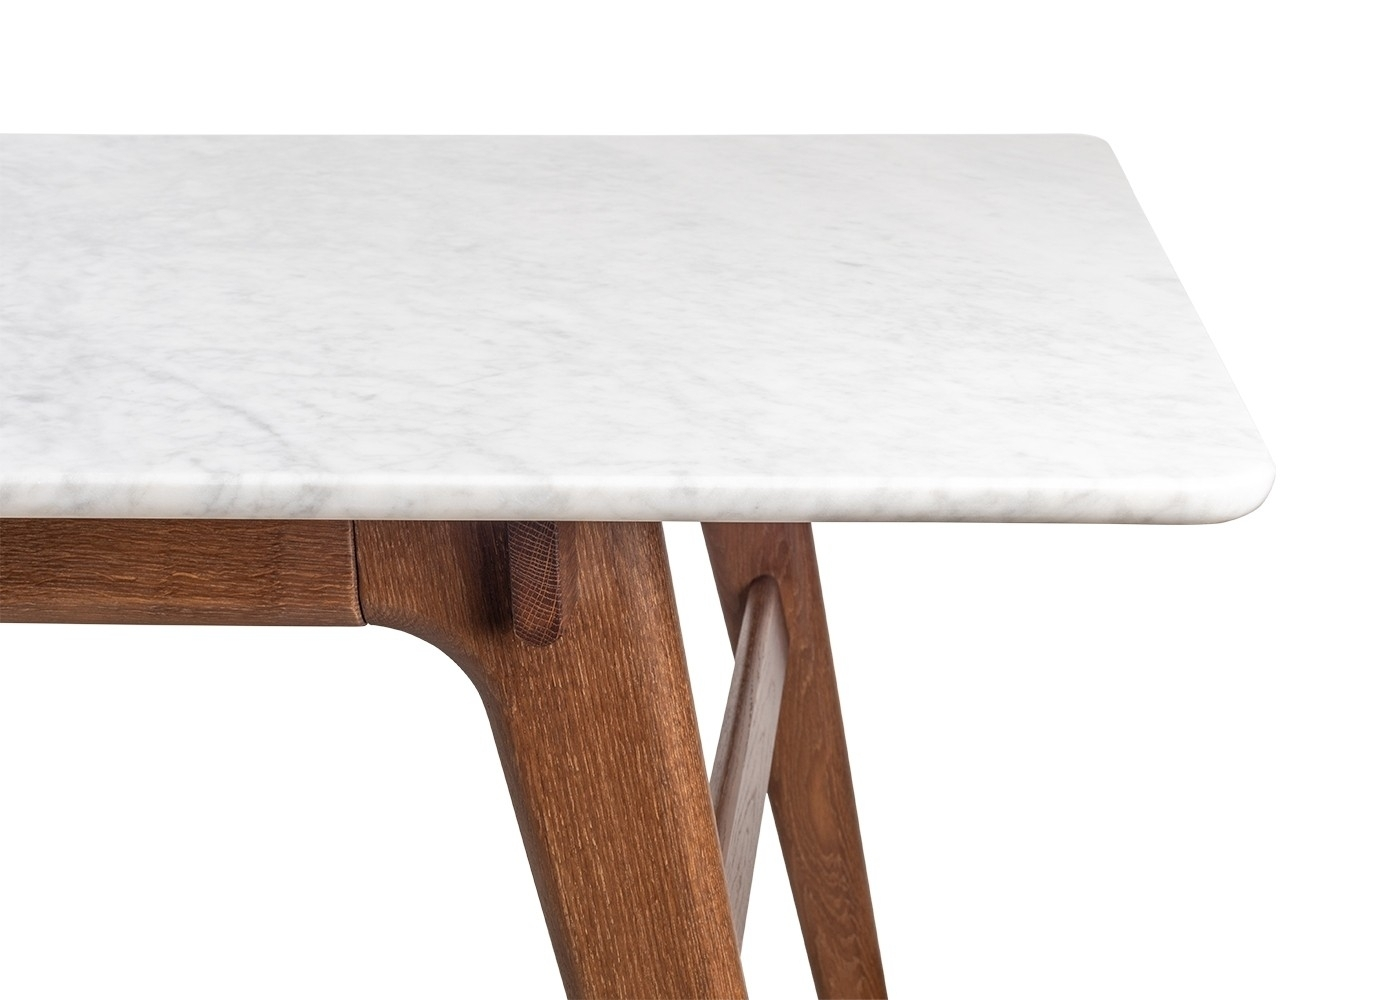 Heal's Blake Dining Table Marble Dark Oak | Heal's inside Suspend Ii Marble and Wood Coffee Tables (Image 10 of 30)